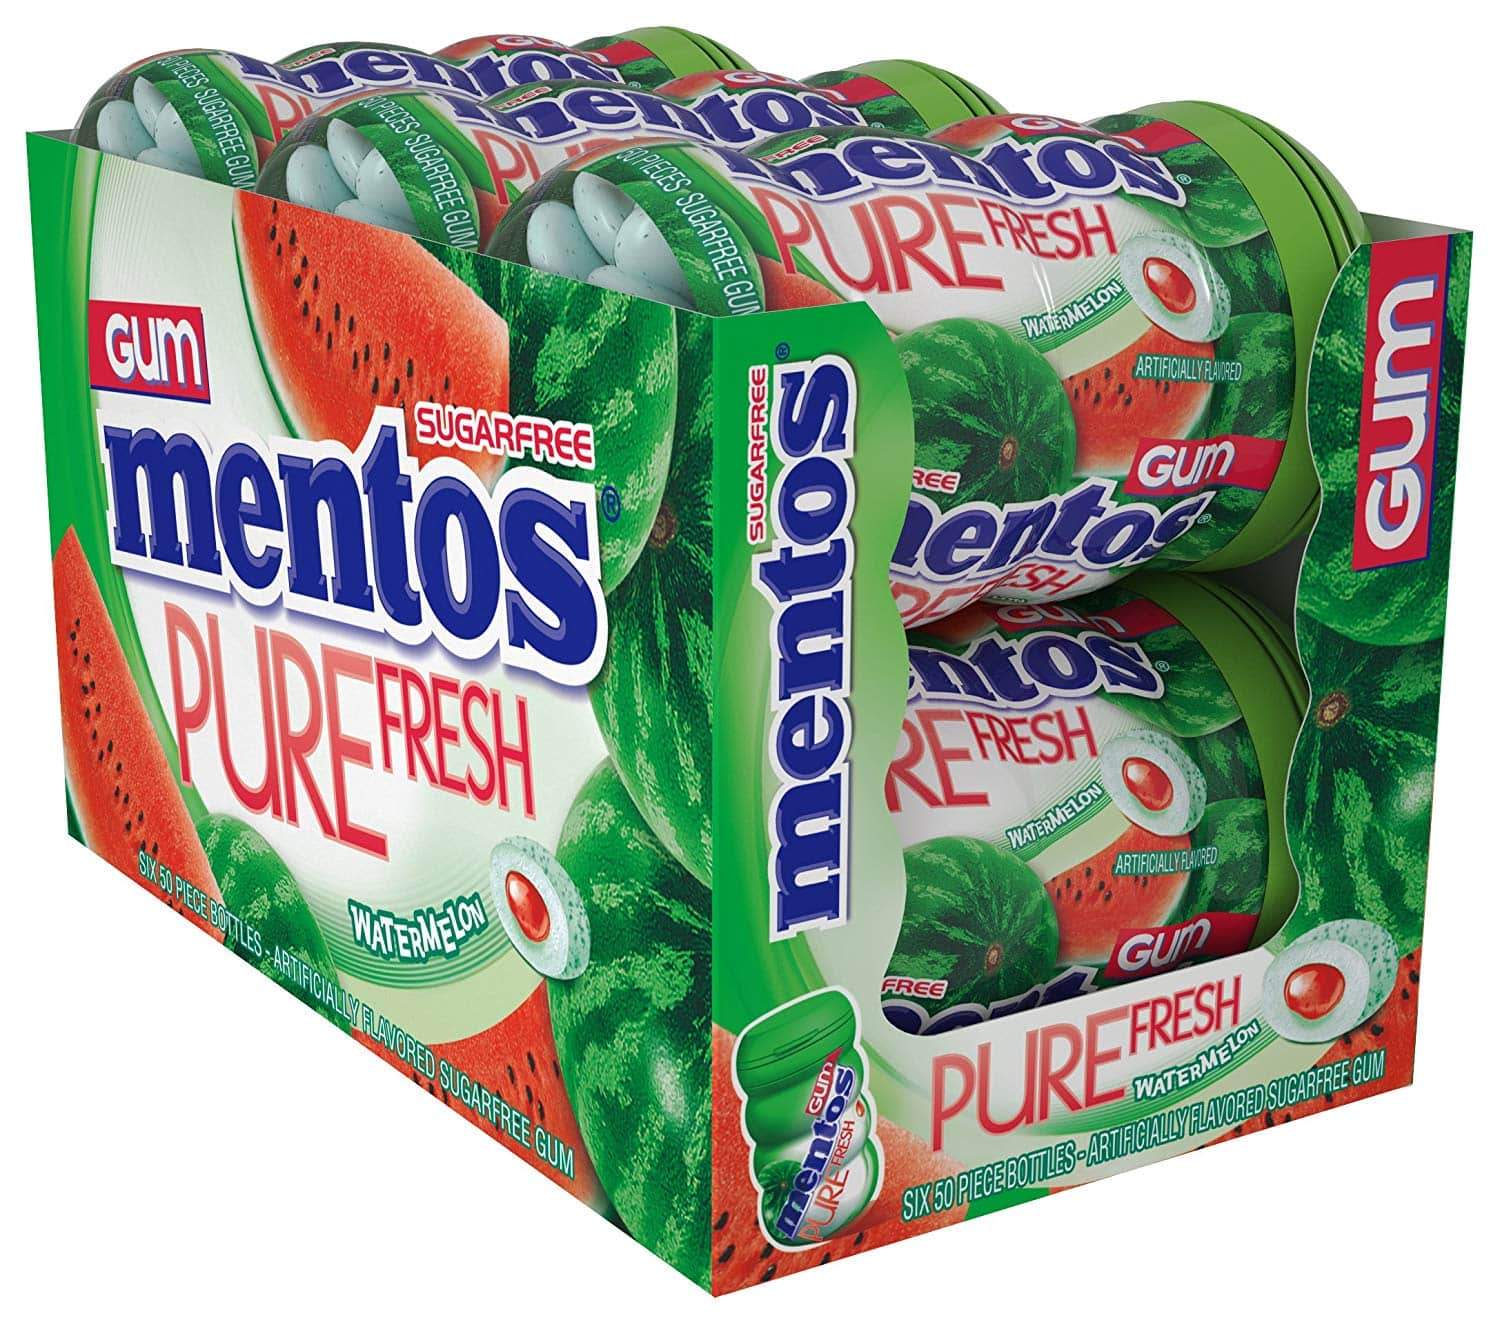 6-Pack 50 Piece Bottle Mentos Pure Fresh Sugar-Free Chewing Gum with Xylitol, Watermelon. $4.50 @ Amazon